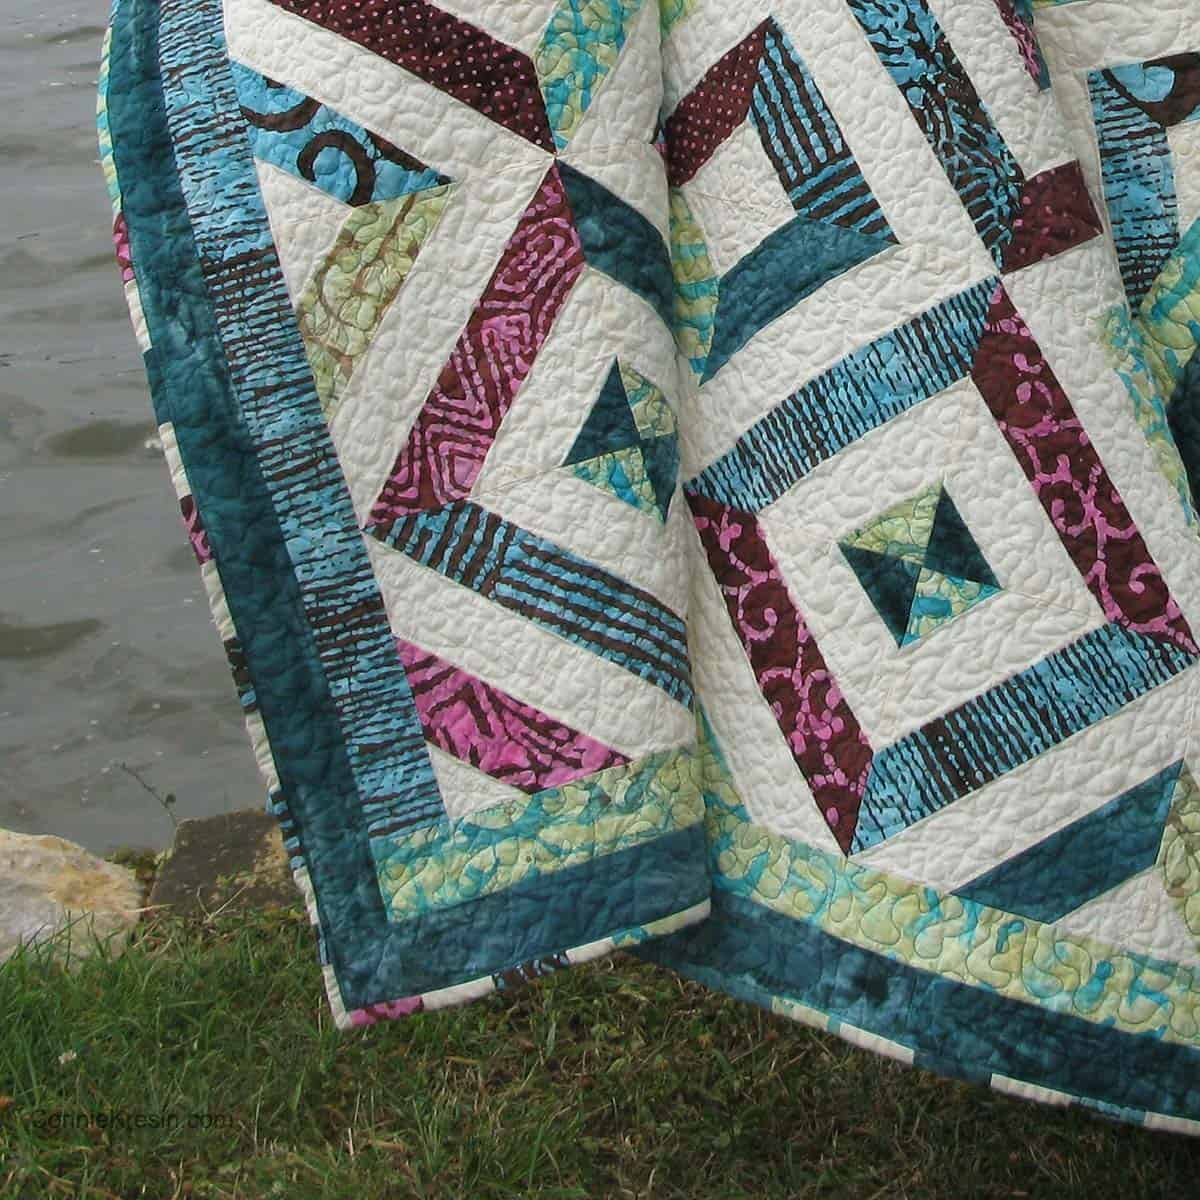 Binding on the Petunia Strings quilt